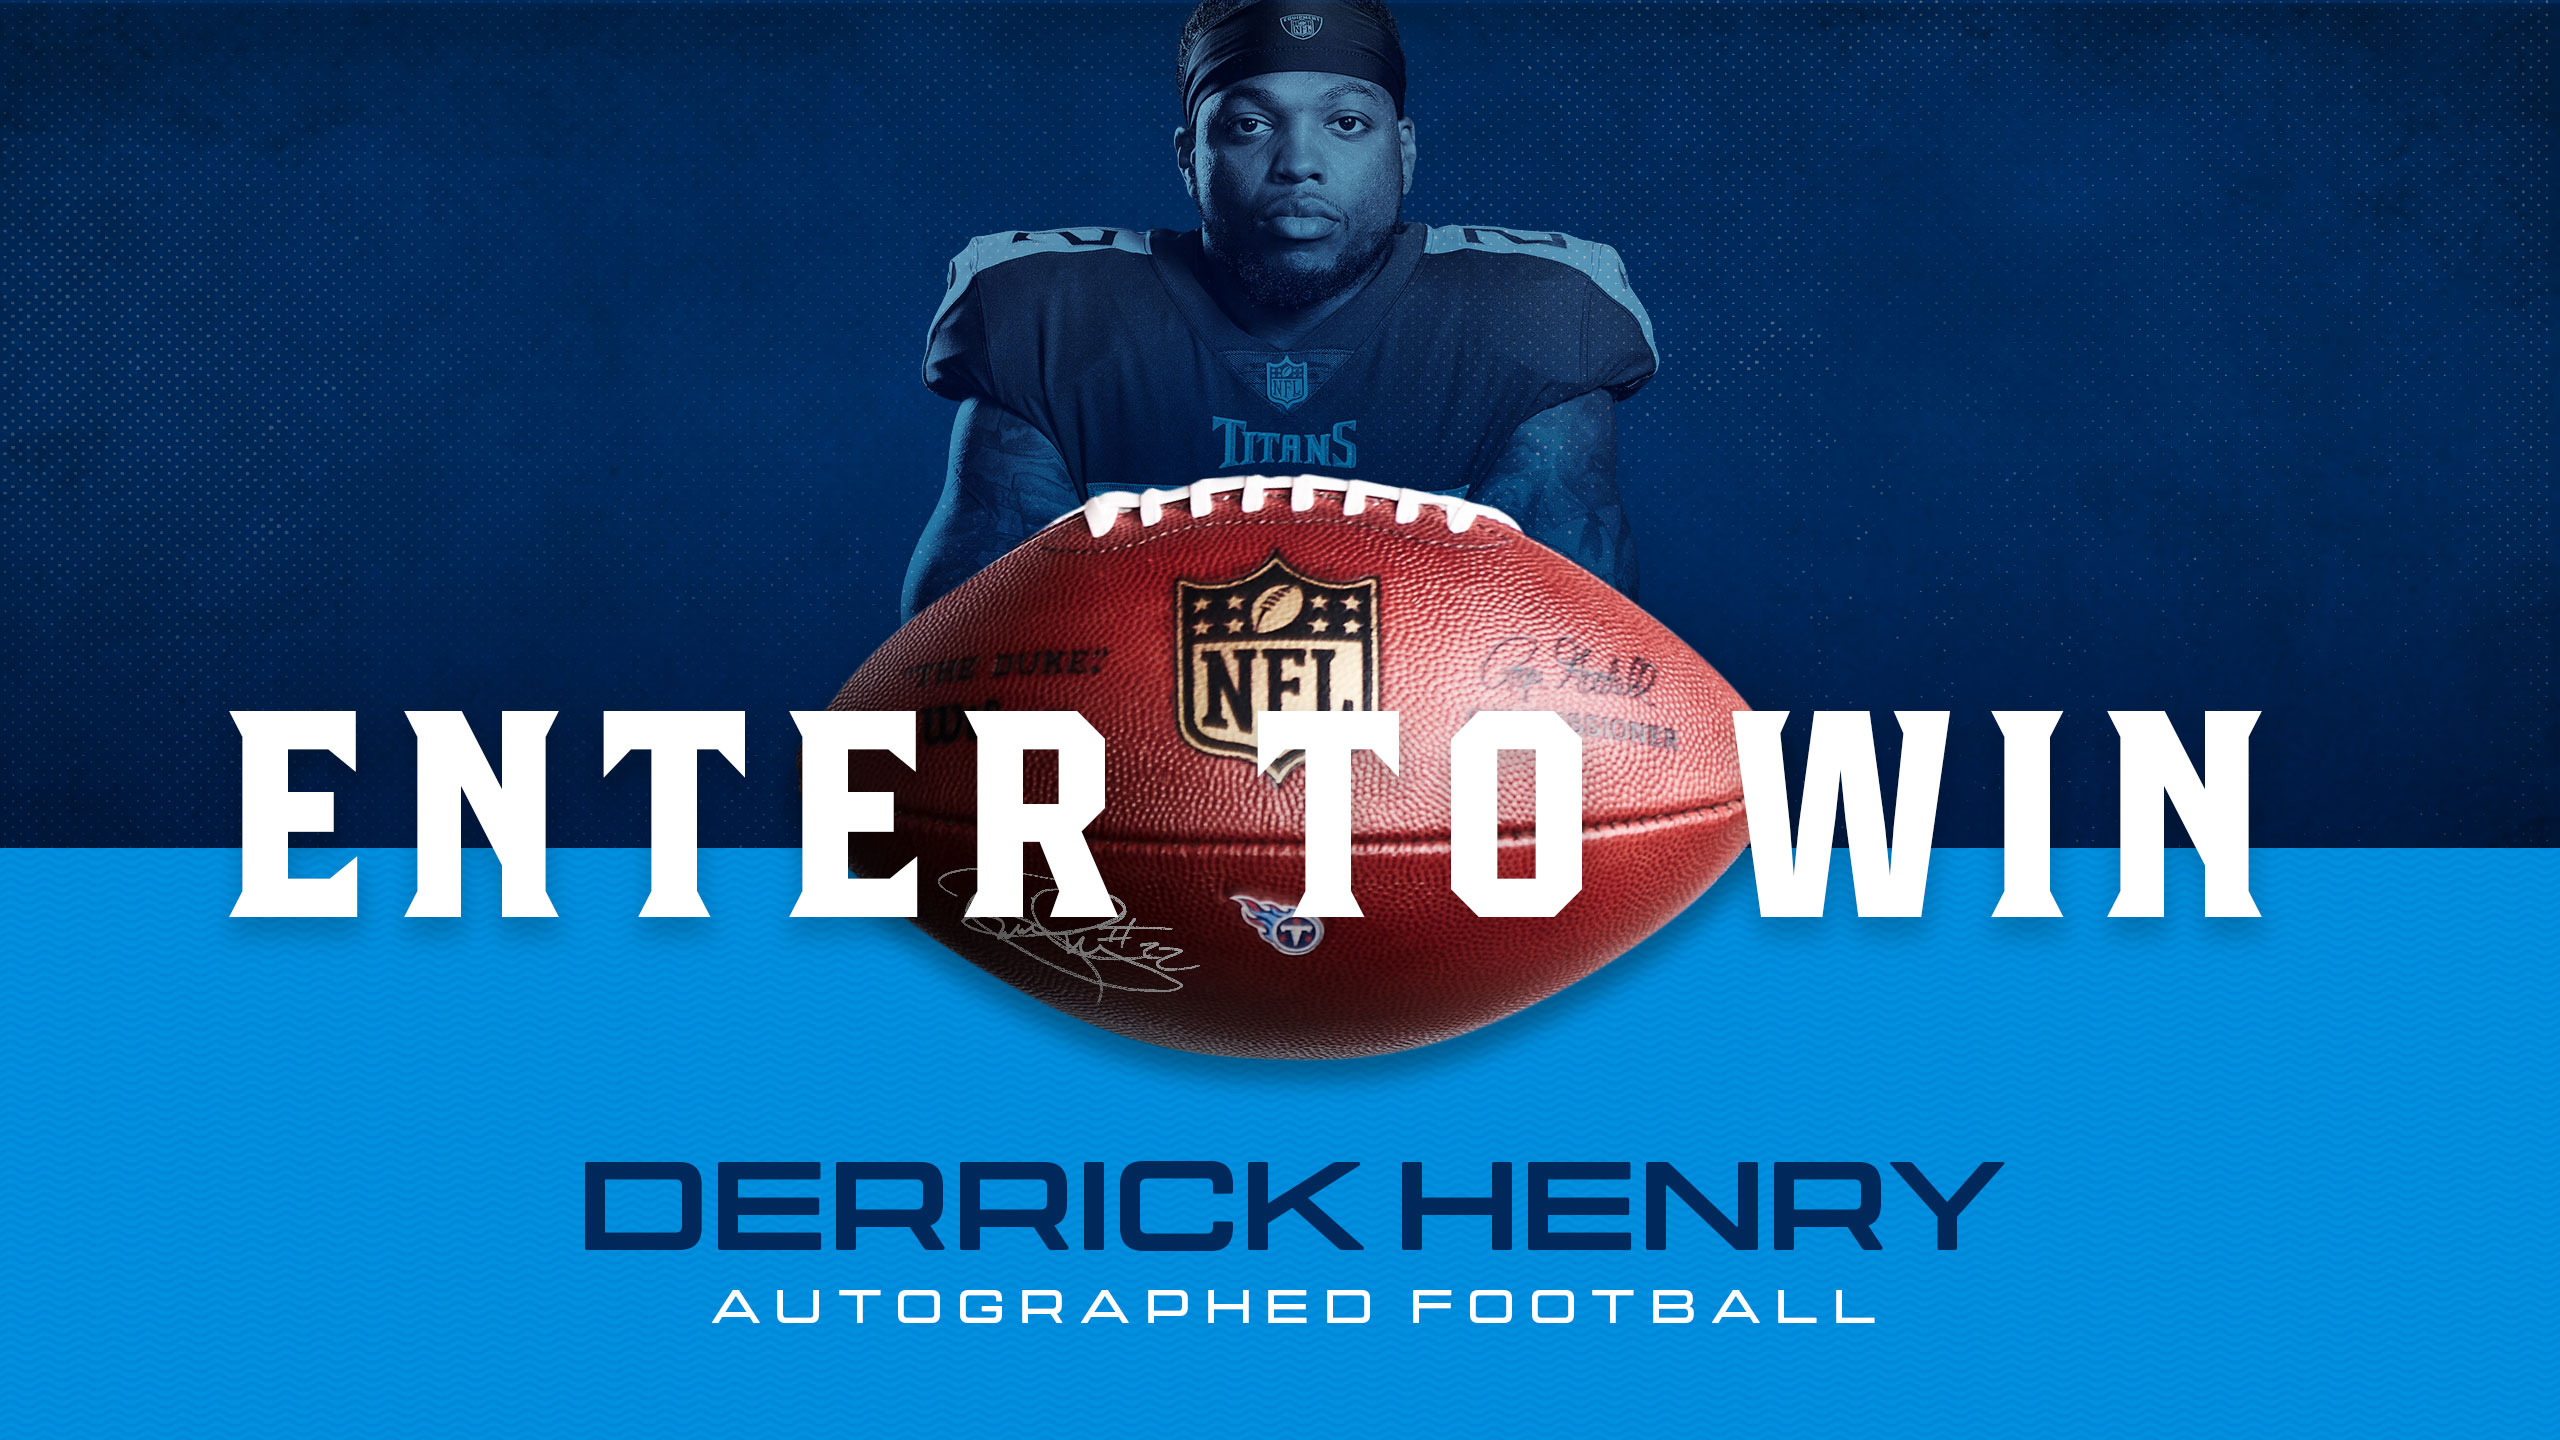 Derrick Henry Autographed Football Sweepstakes